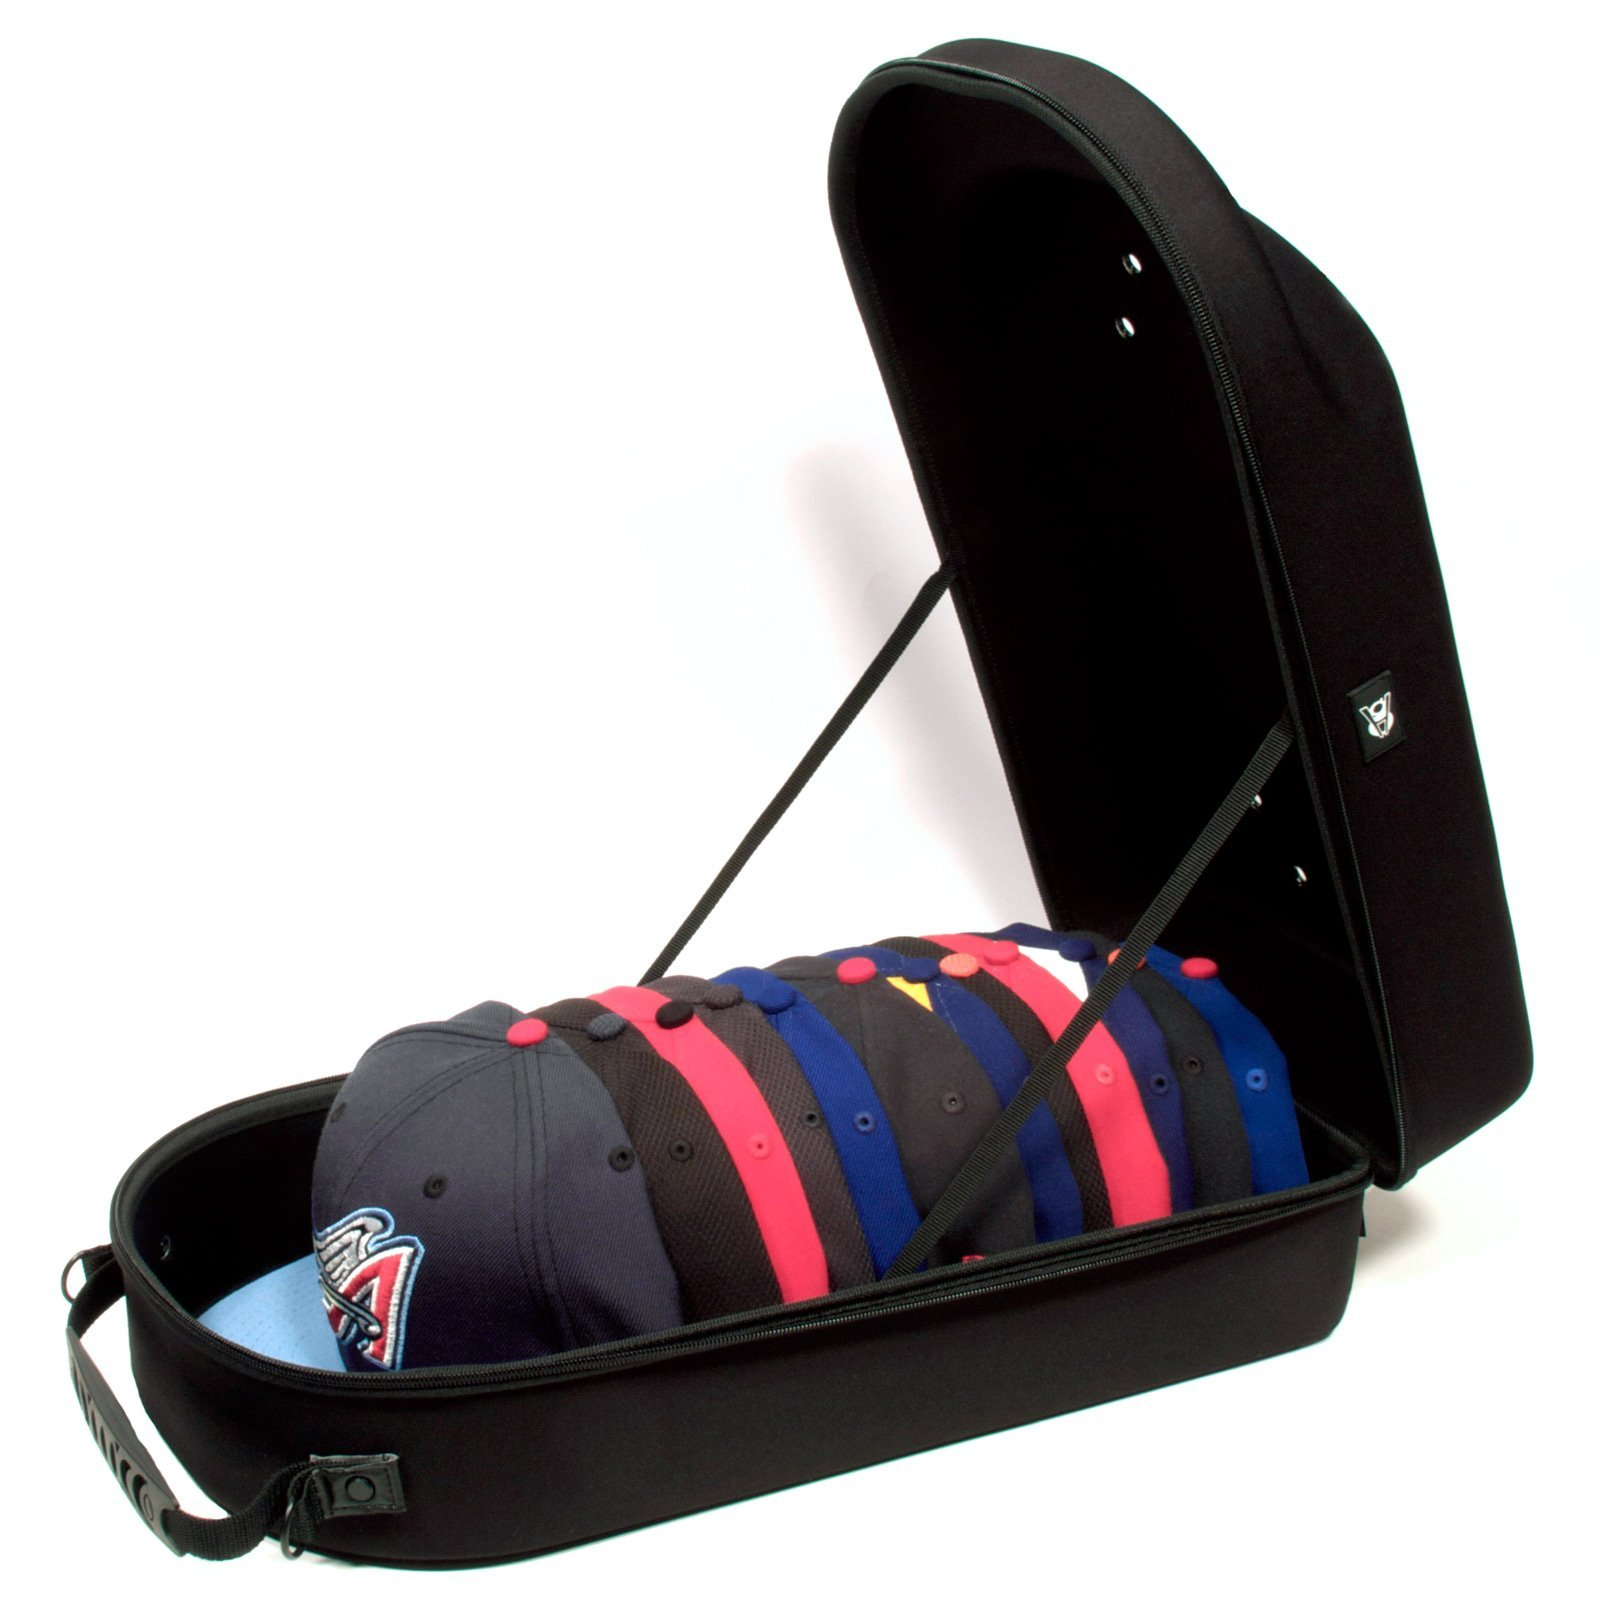 Homiegear Brand Carrier Case - 12 Hats for all Caps, Snap Back, Fitted by Homiegear